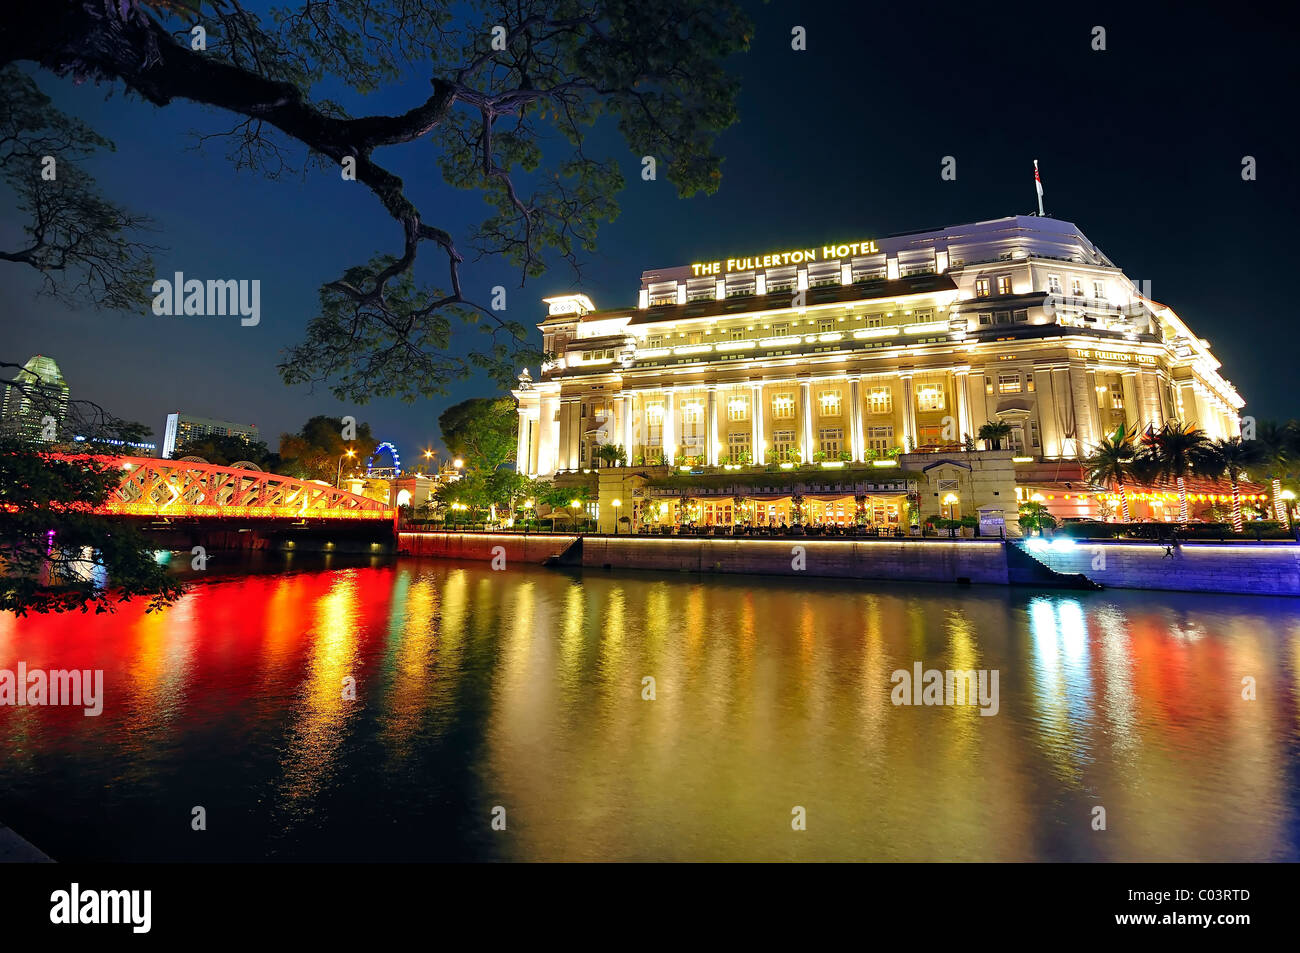 The Fullerton Hotel decked in festive lights during the Chinese New Year celebration in Singapore. Stock Photo